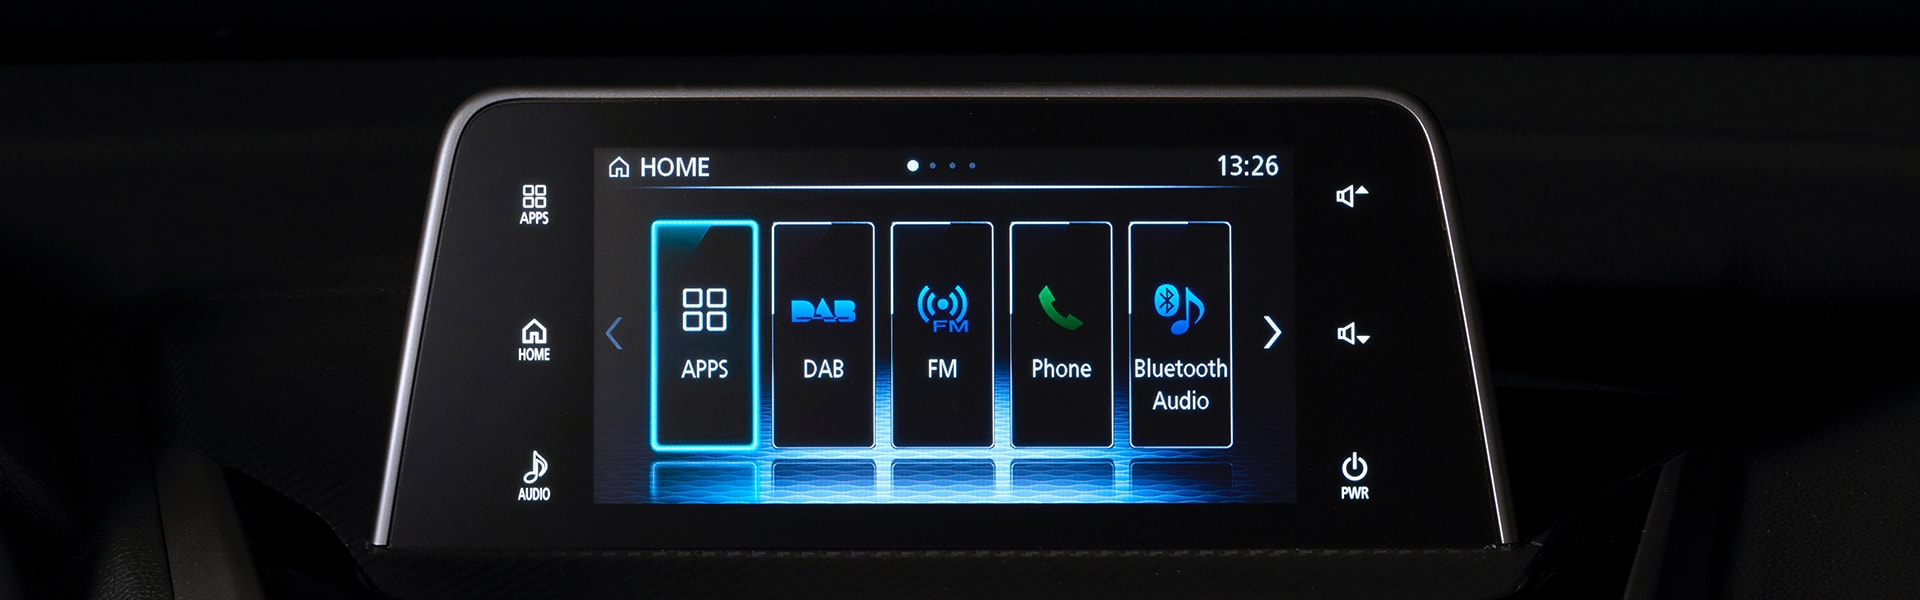 Touchscreen-Display-2018-Mitsubishi-Eclipse-Cross-Interior-d.jpg